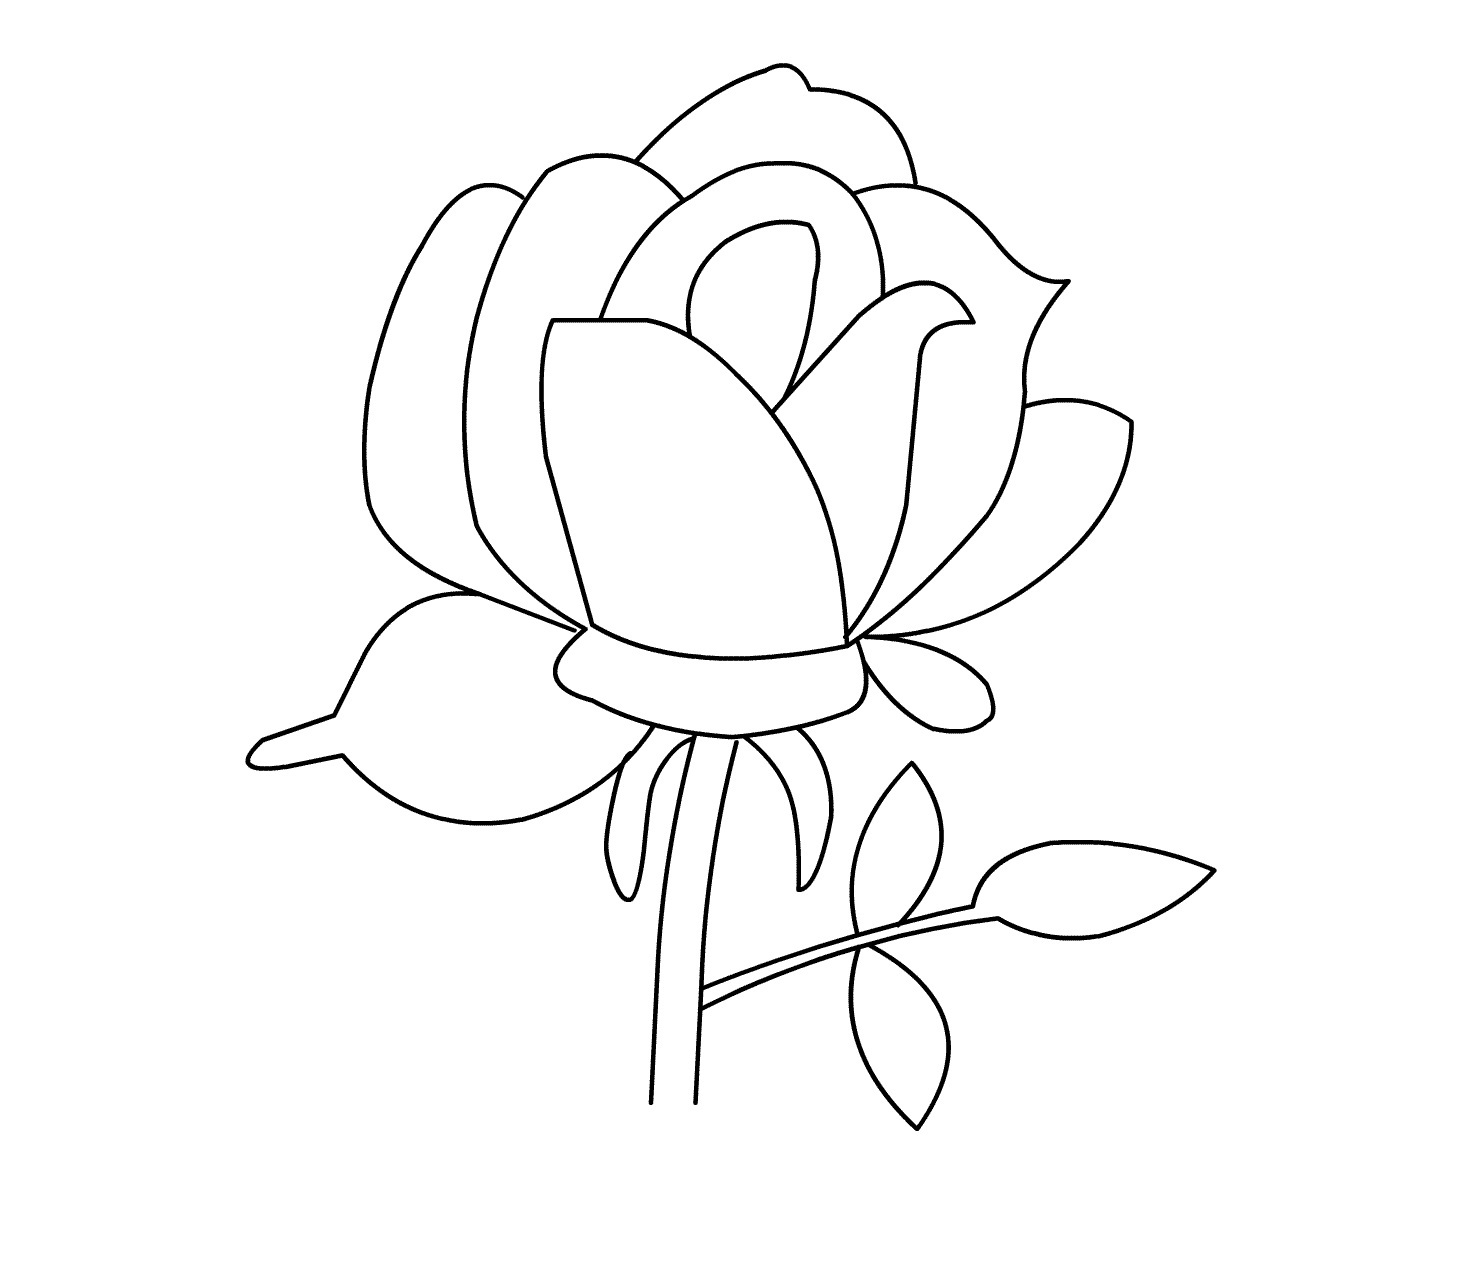 picture of a rose to color rose flower for beautiful lady coloring page download of color a to picture rose